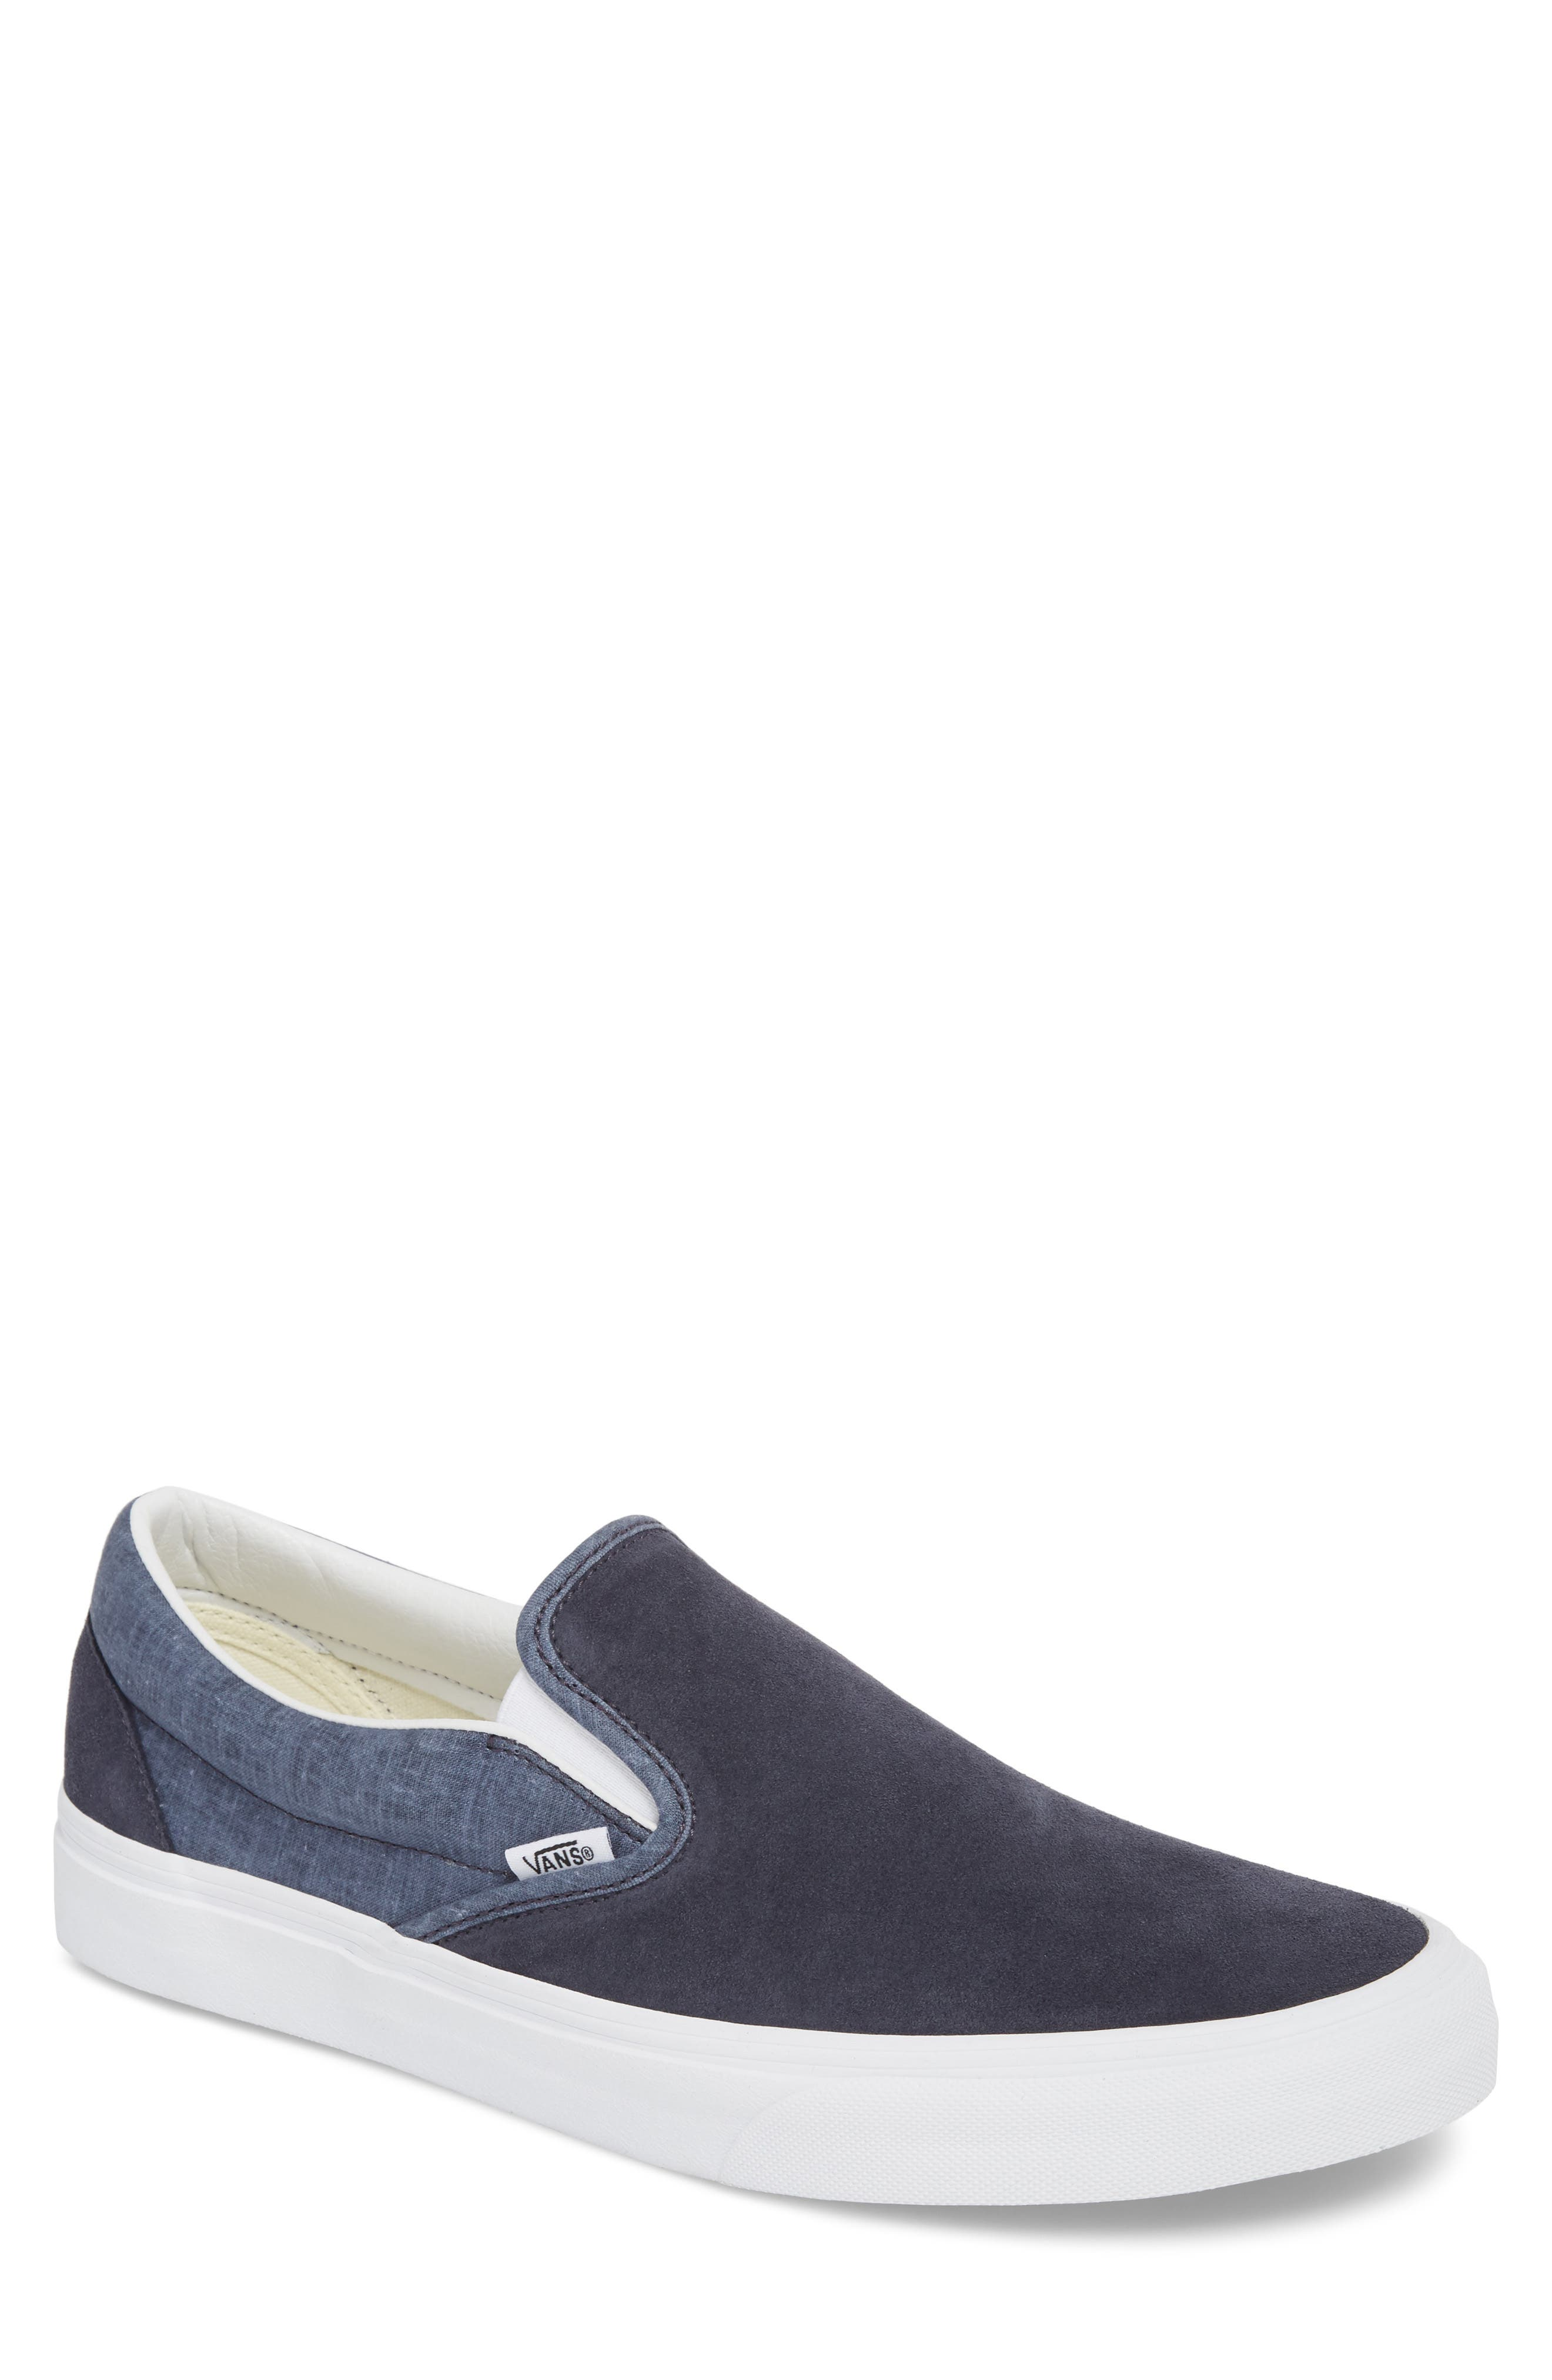 'Classic' Slip-On Sneaker,                         Main,                         color, Parisian Night Suede